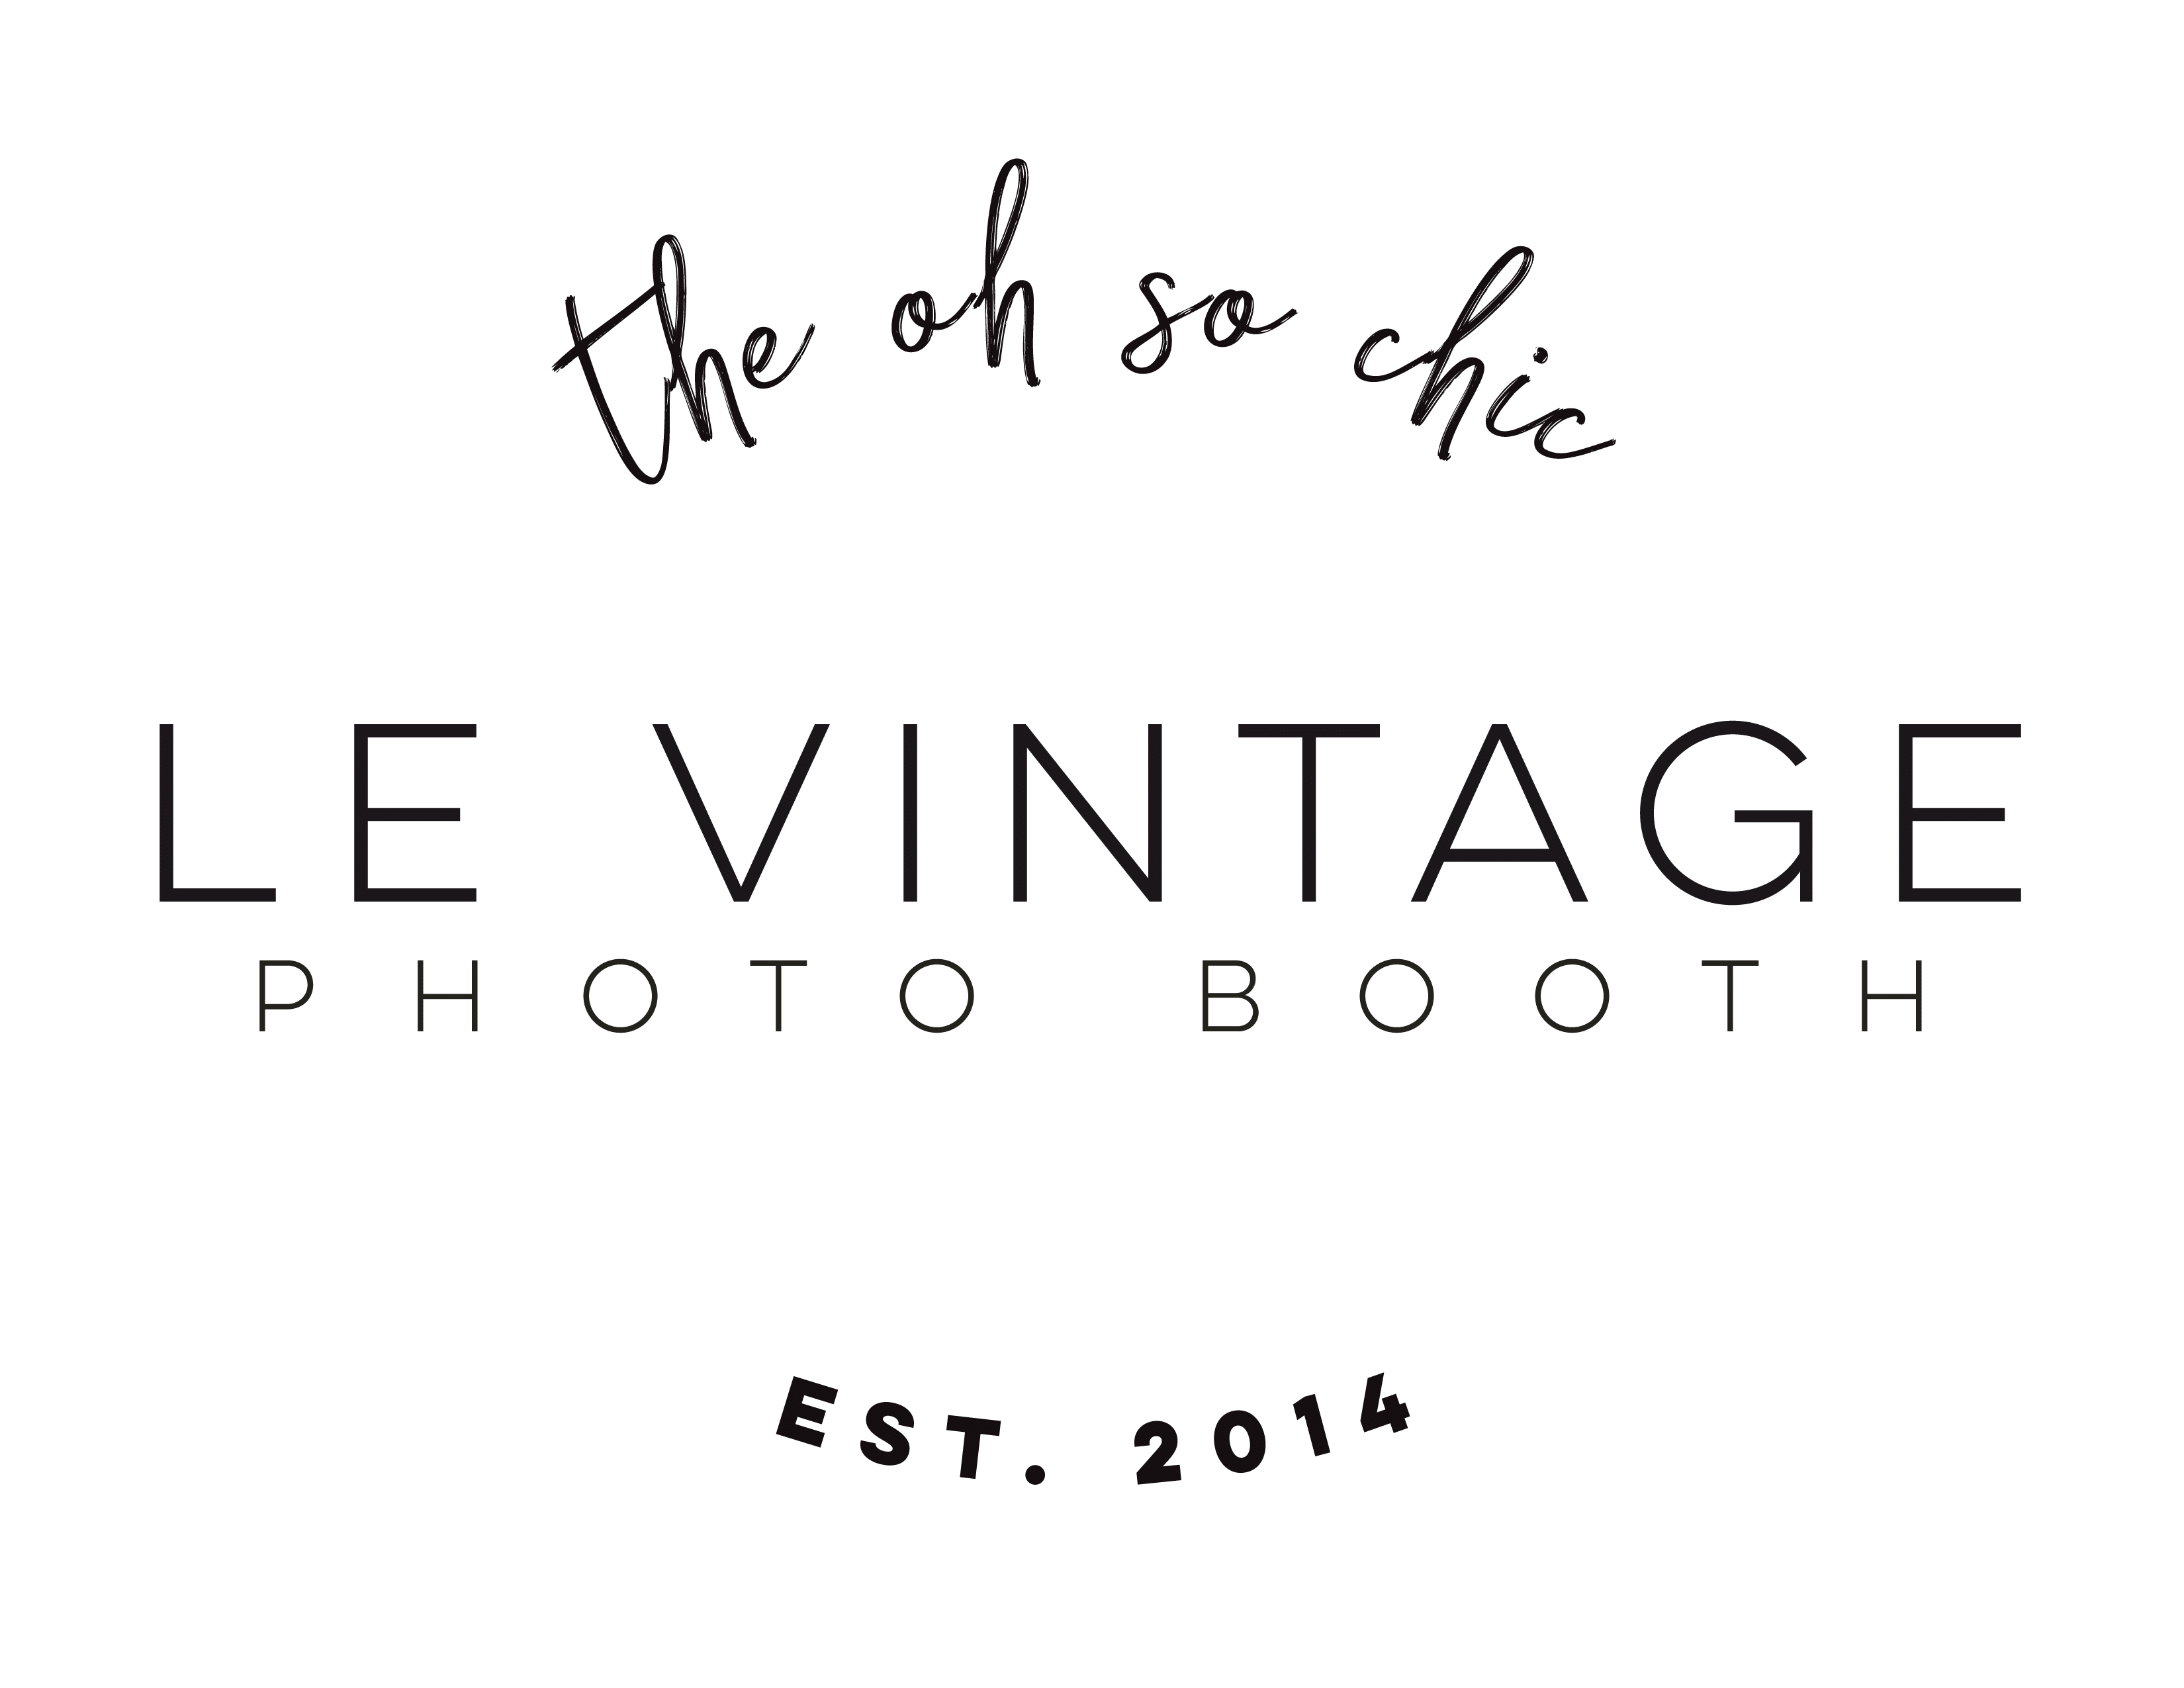 Le Vintage Photo Booth - South Texas and RGV Photo Booth